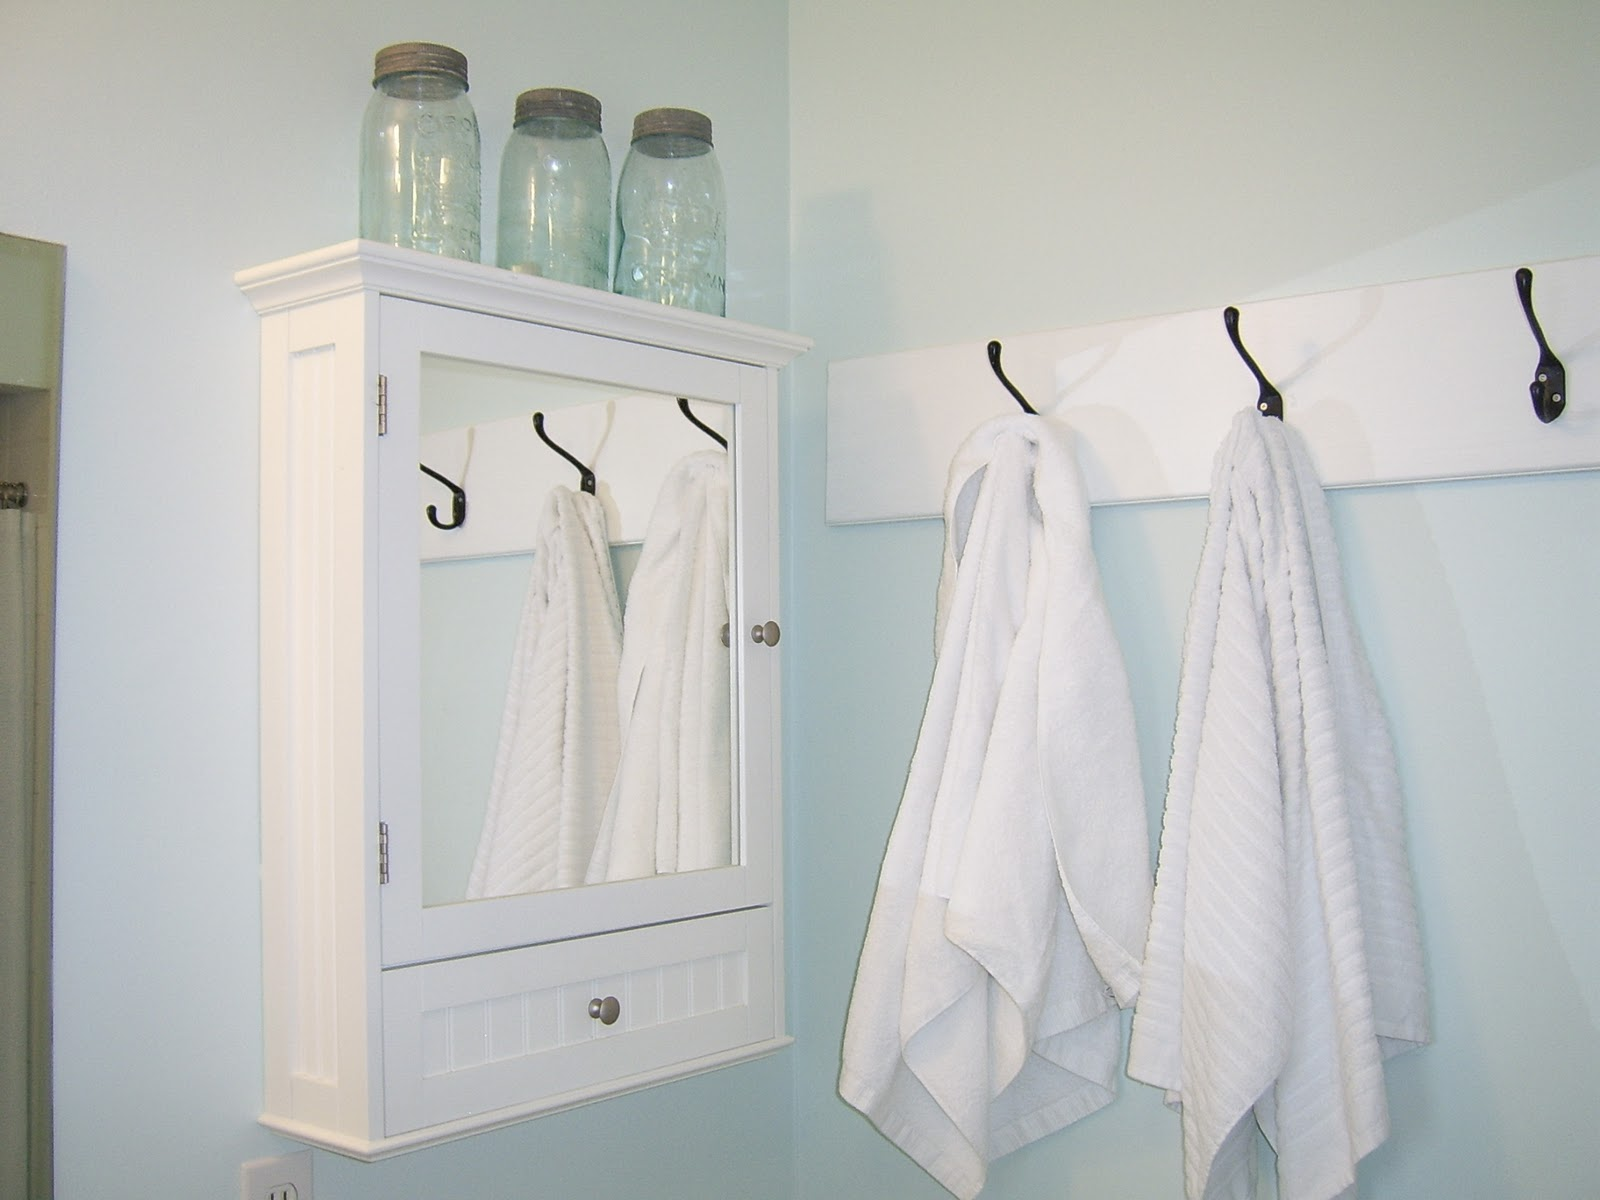 Stylish Bathroom With Storage and Mirror also Lush Towel Hooks